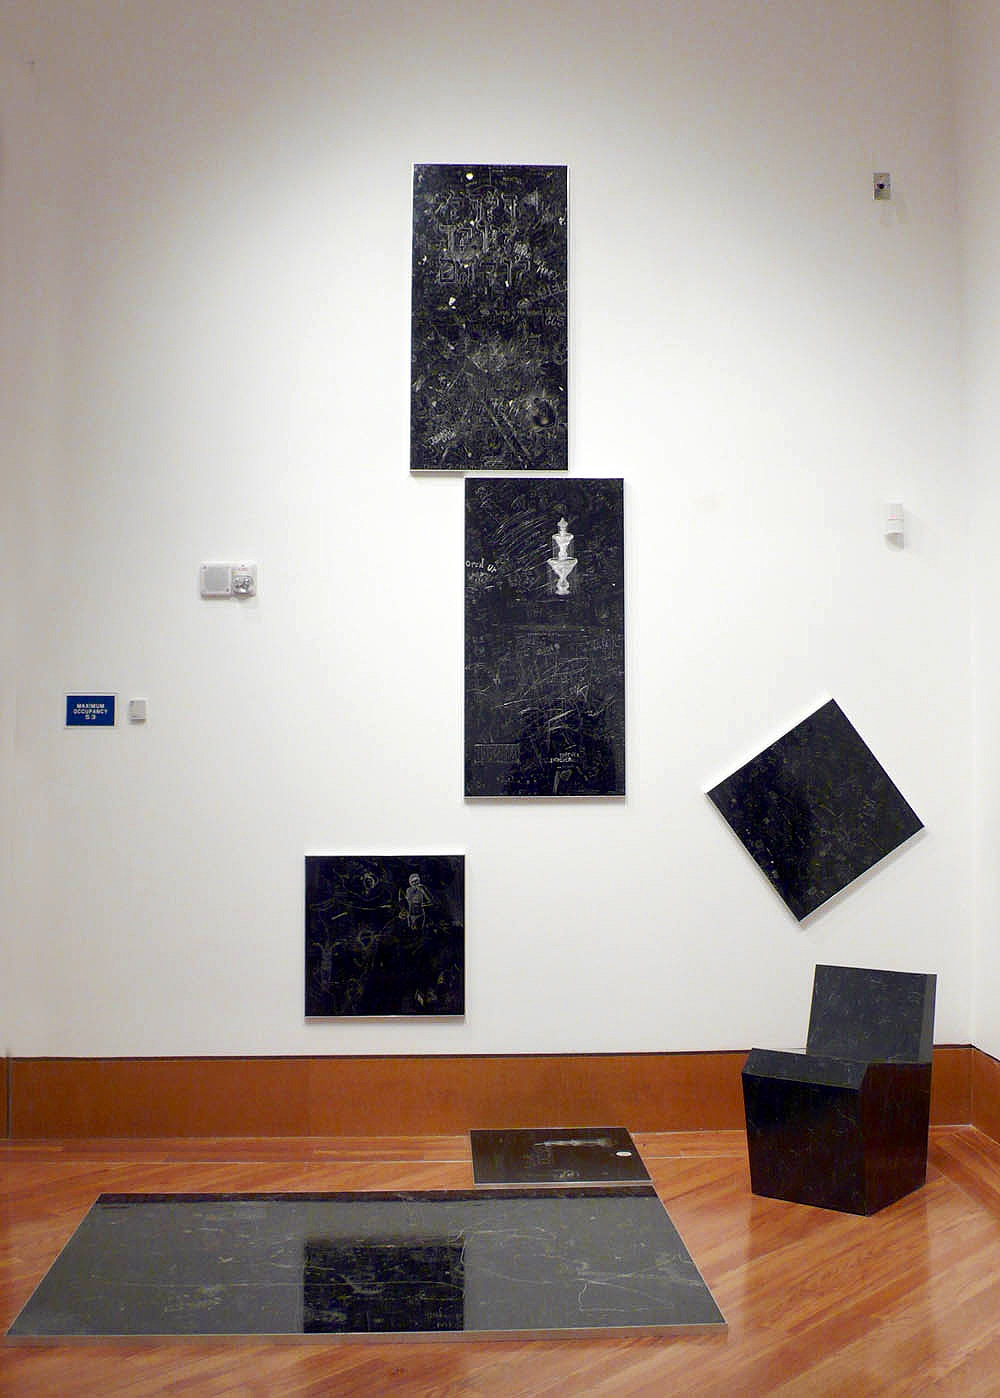 Galaxy 1,P.S., Installation view at the Frost Art Museum, Miami, FL. 2012